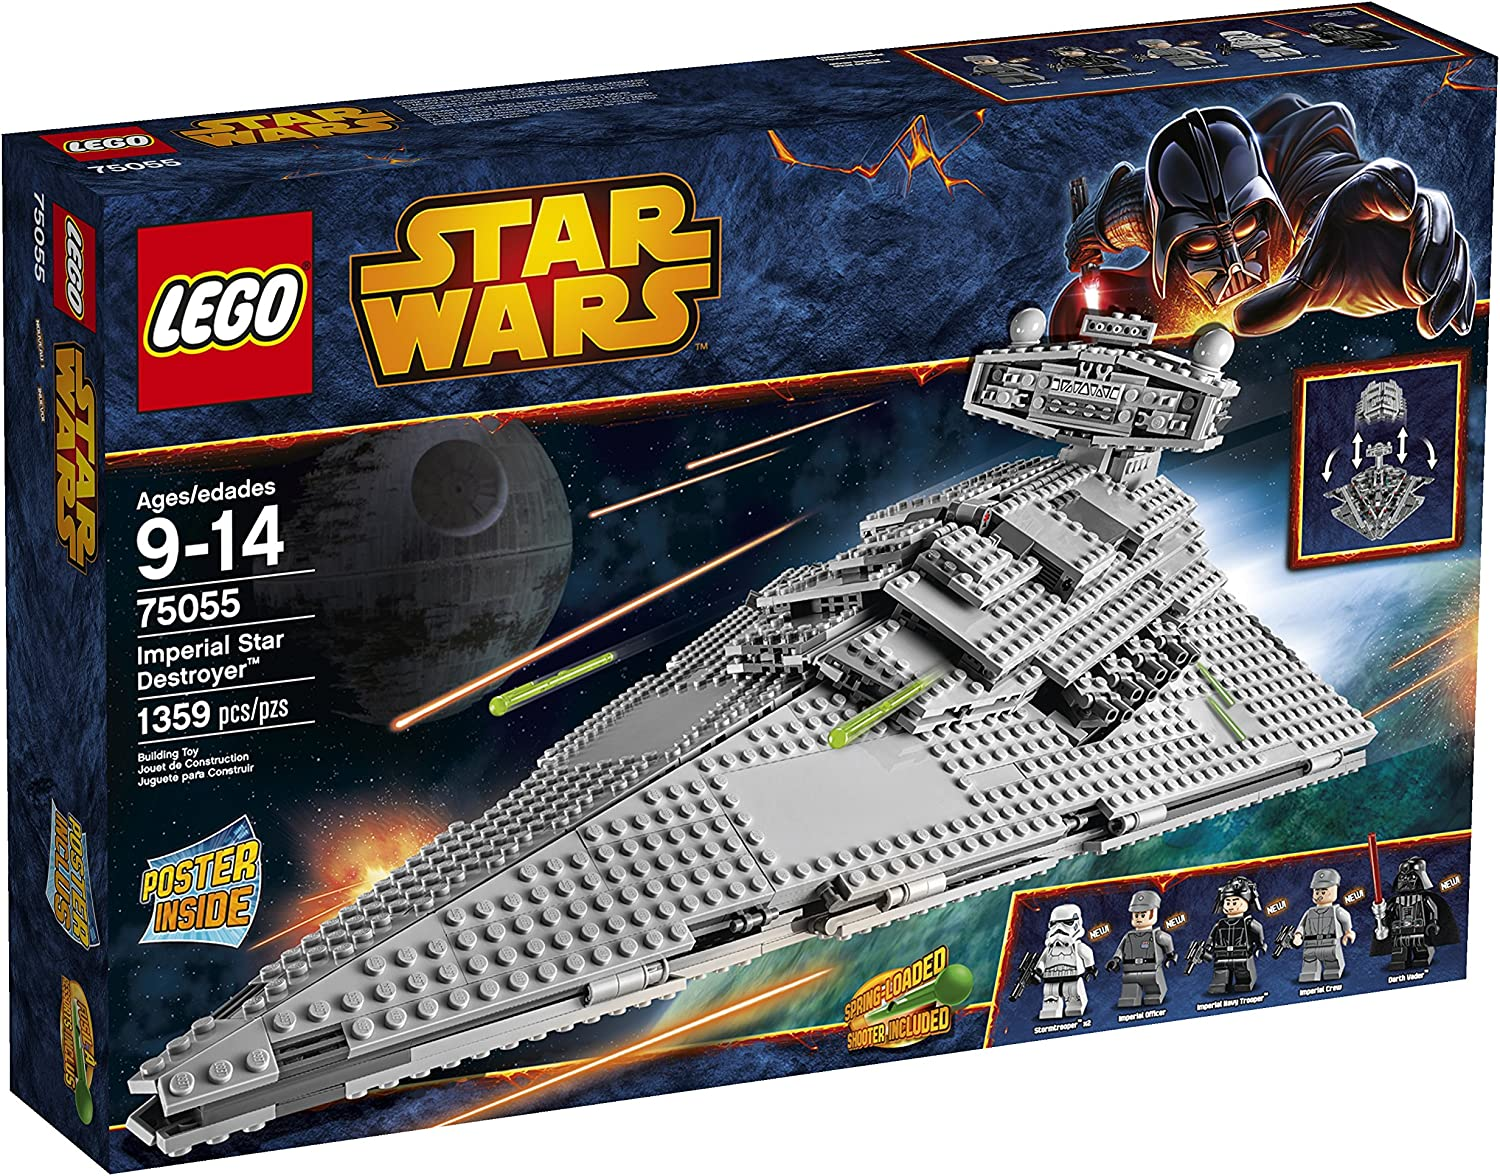 LEGO Star Wars 75055 Imperial Star Destroyer Building Toy(Discontinued by manufacturer)